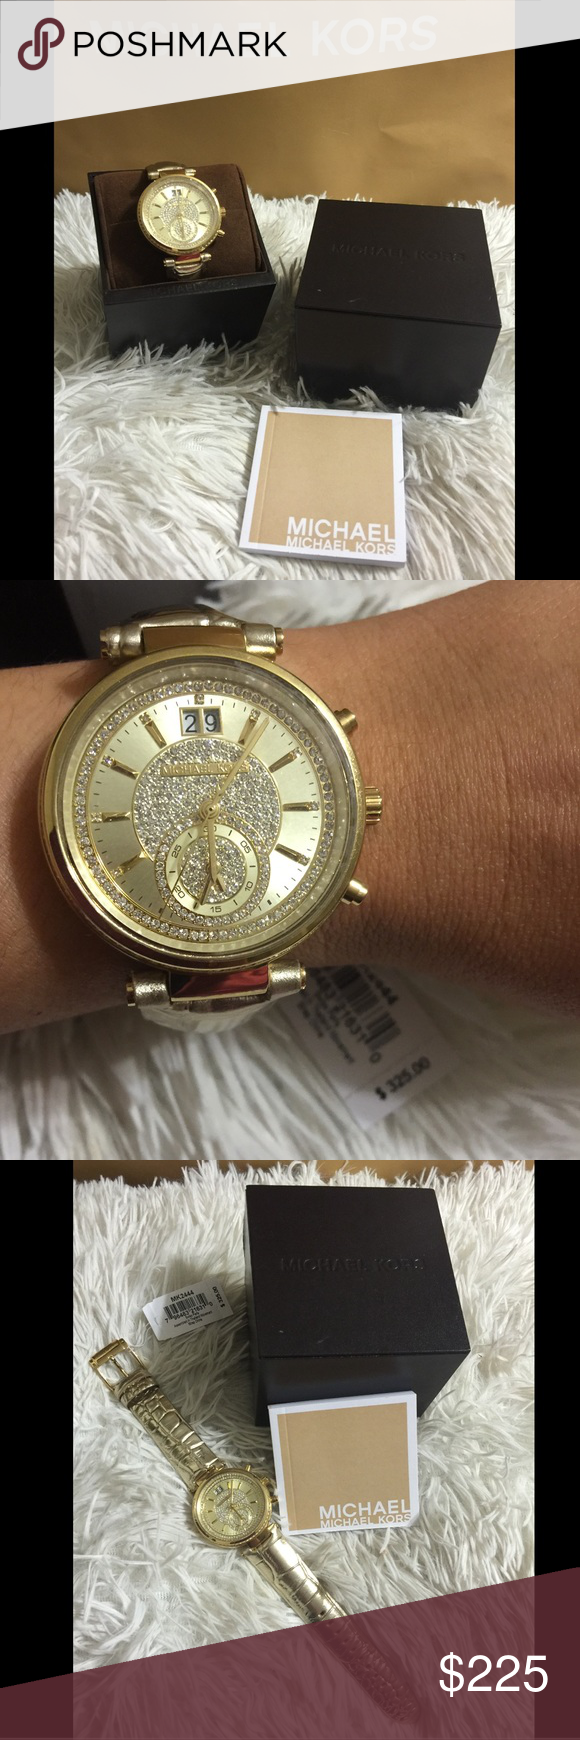 7793e4a21dcb2 ❗️New❗️MIchael Kors Sawyer Gold Crystal Watch Gold-tone stainless steel  case with